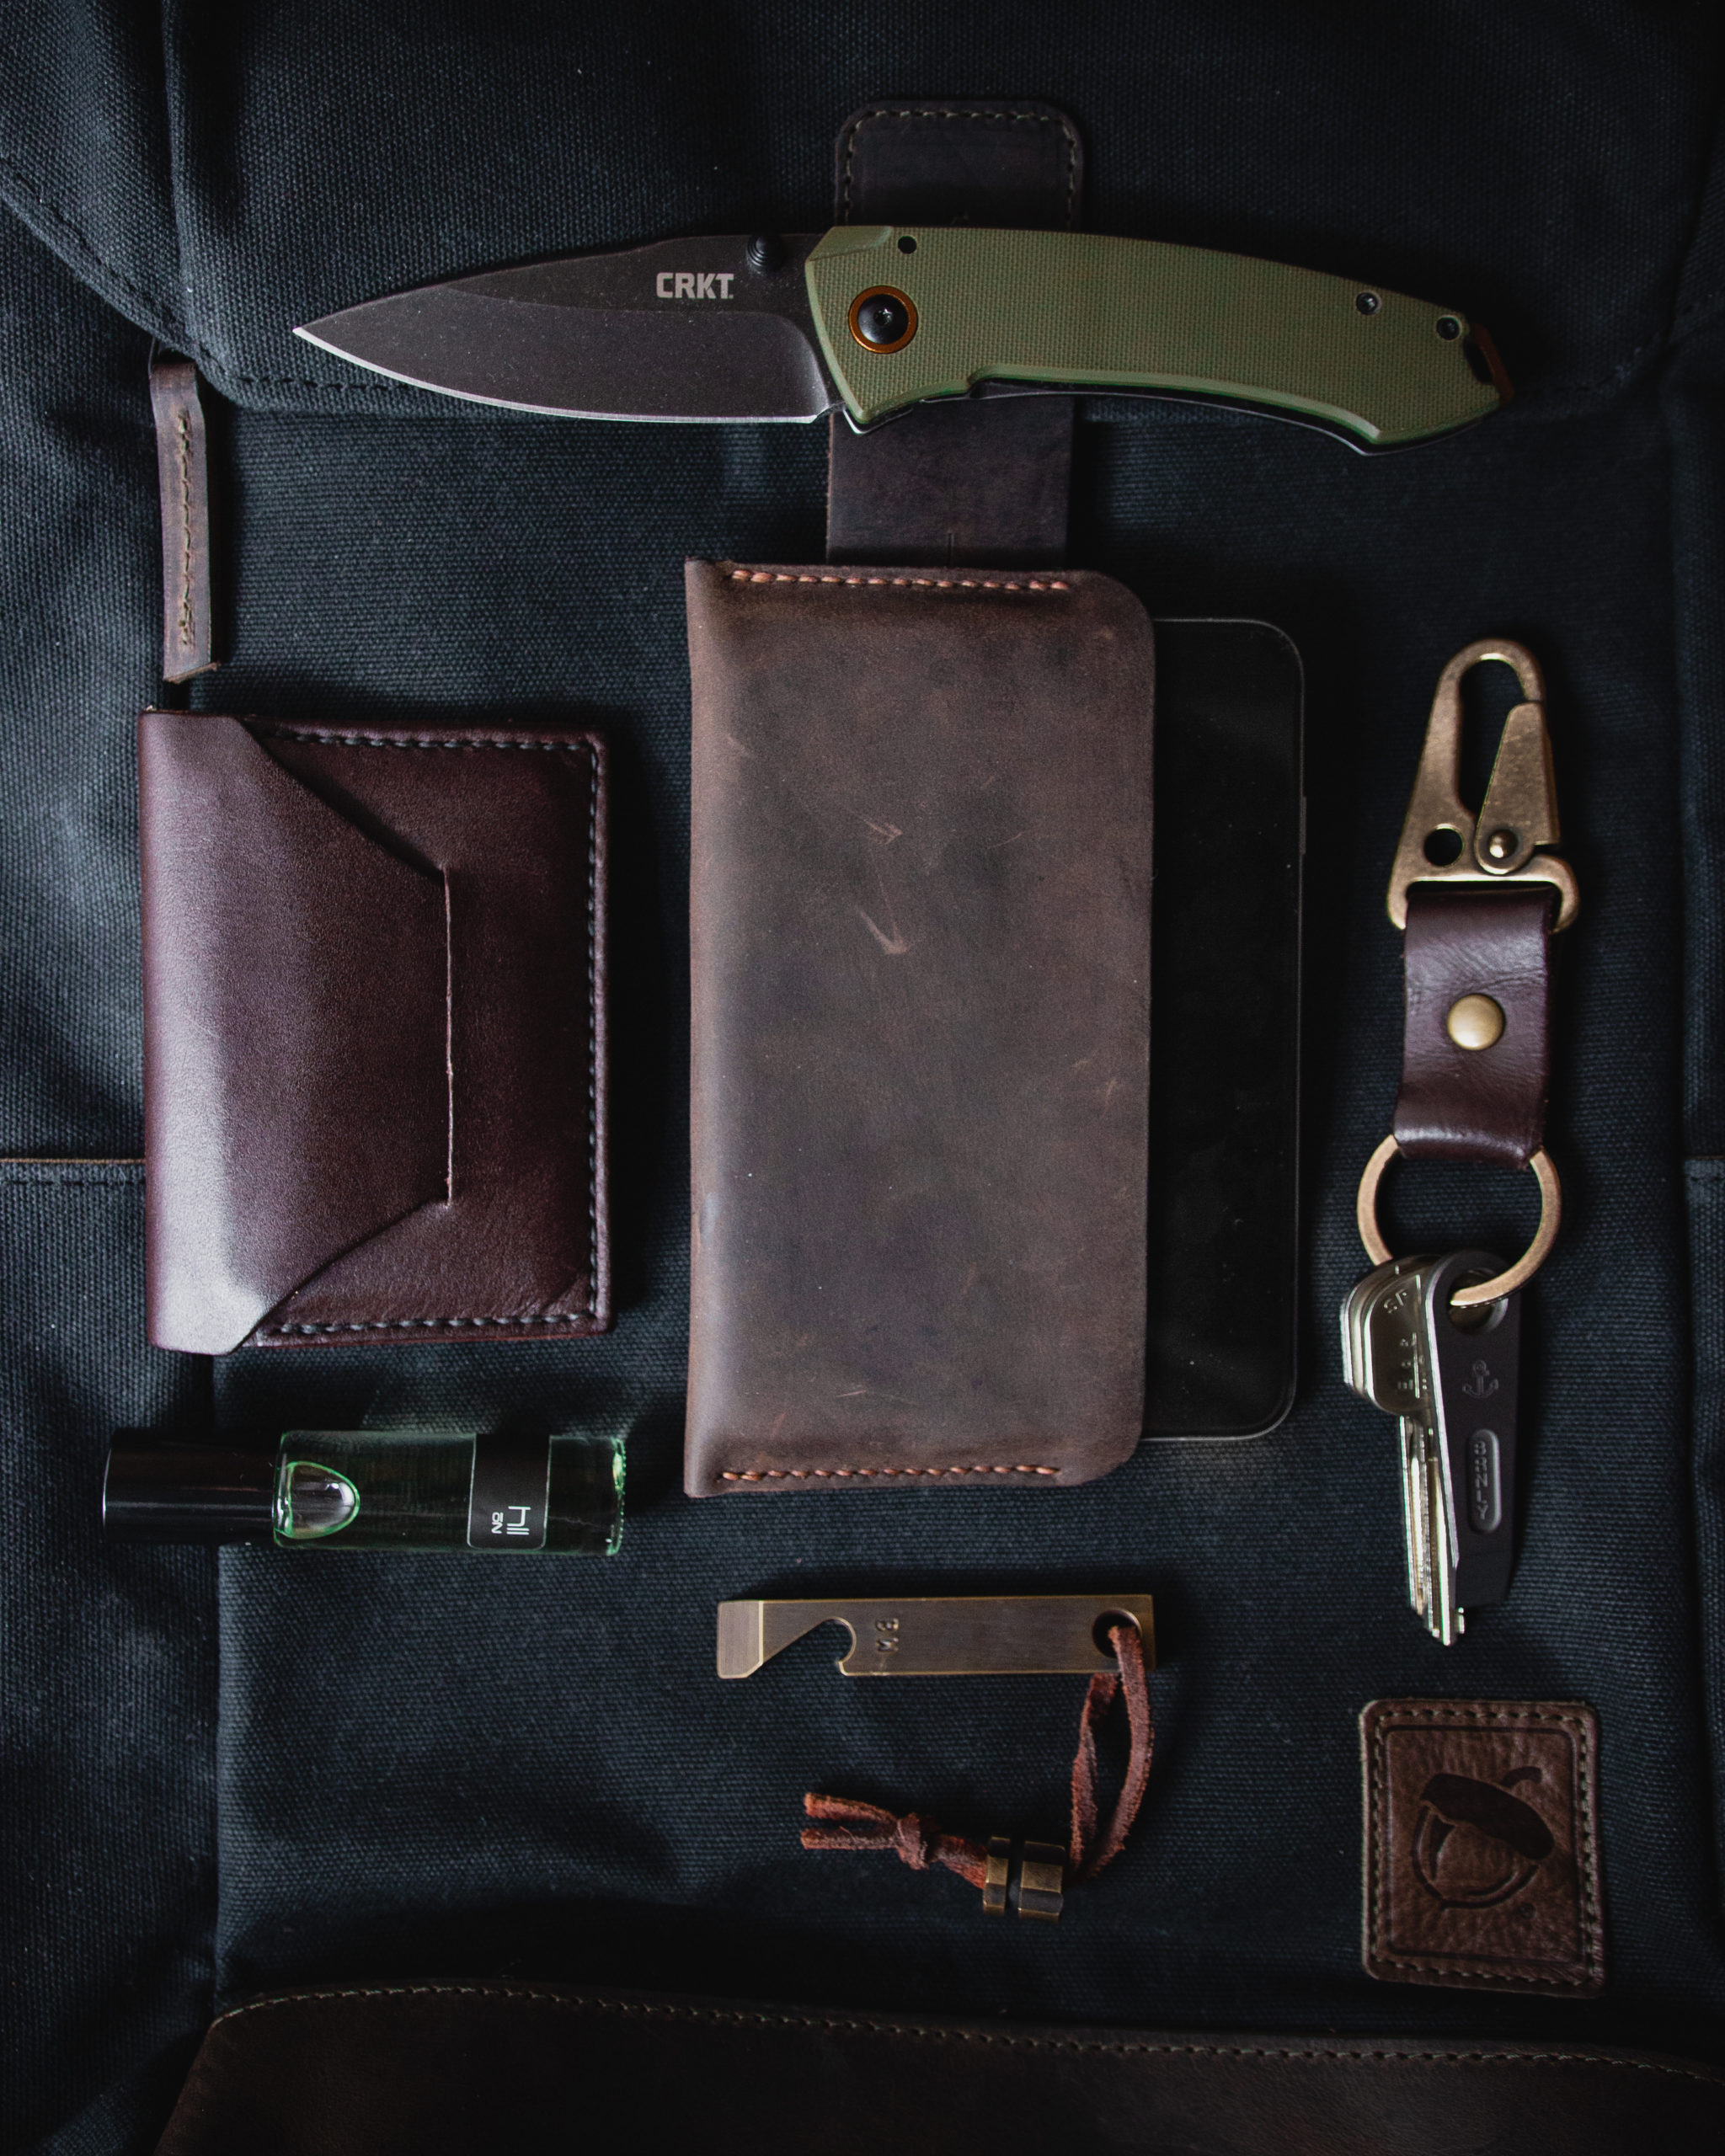 Carry Feature #004 - @Raven_The_Pirate - Samson Tran